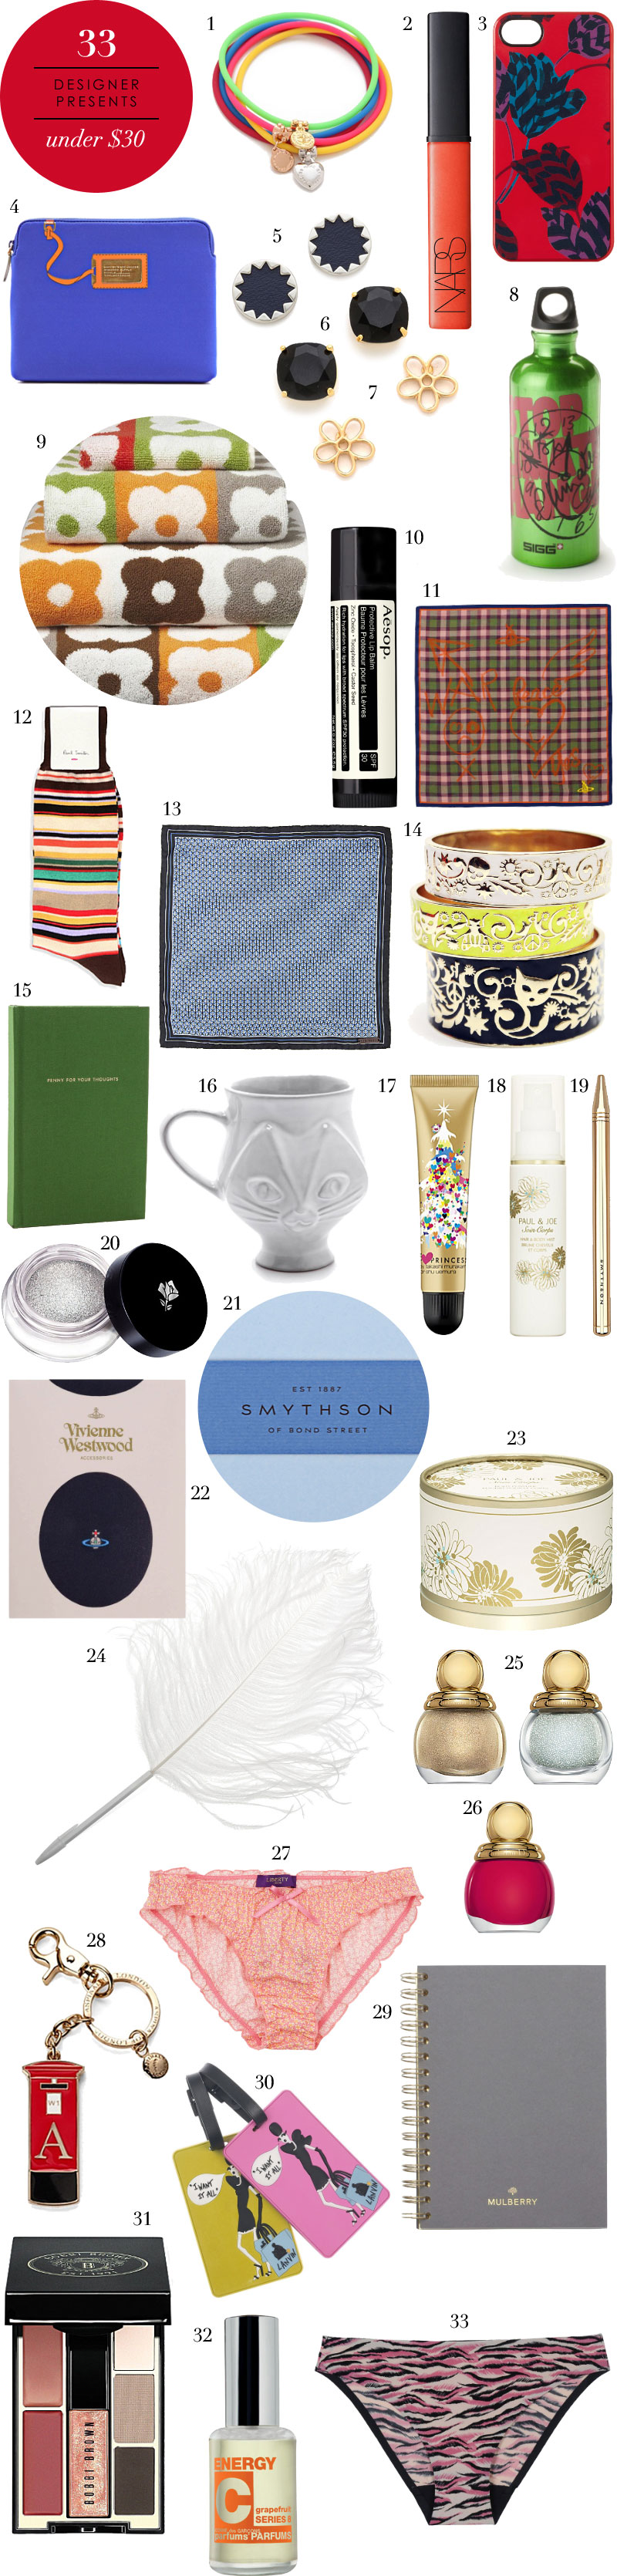 33 Designer Presents for Under $50 via Wee Birdy